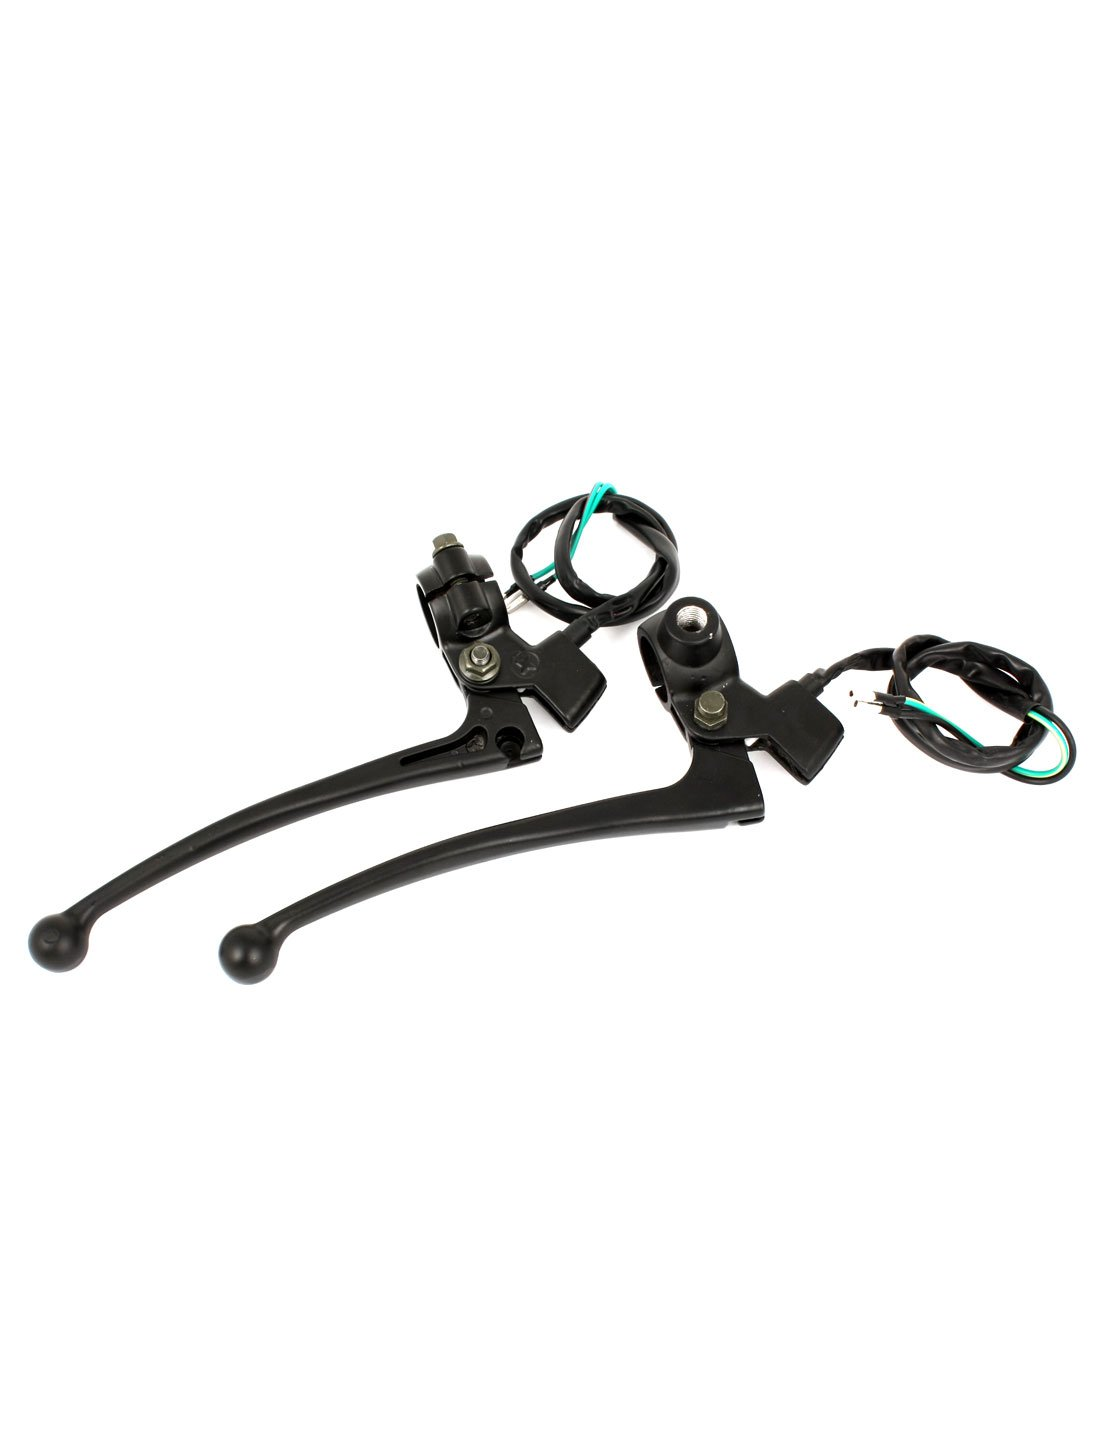 Amazon.com: uxcell Scooter Motorcycle Left Right Brake Handle Bar Switch Controller Set DC 12V/24V: Automotive